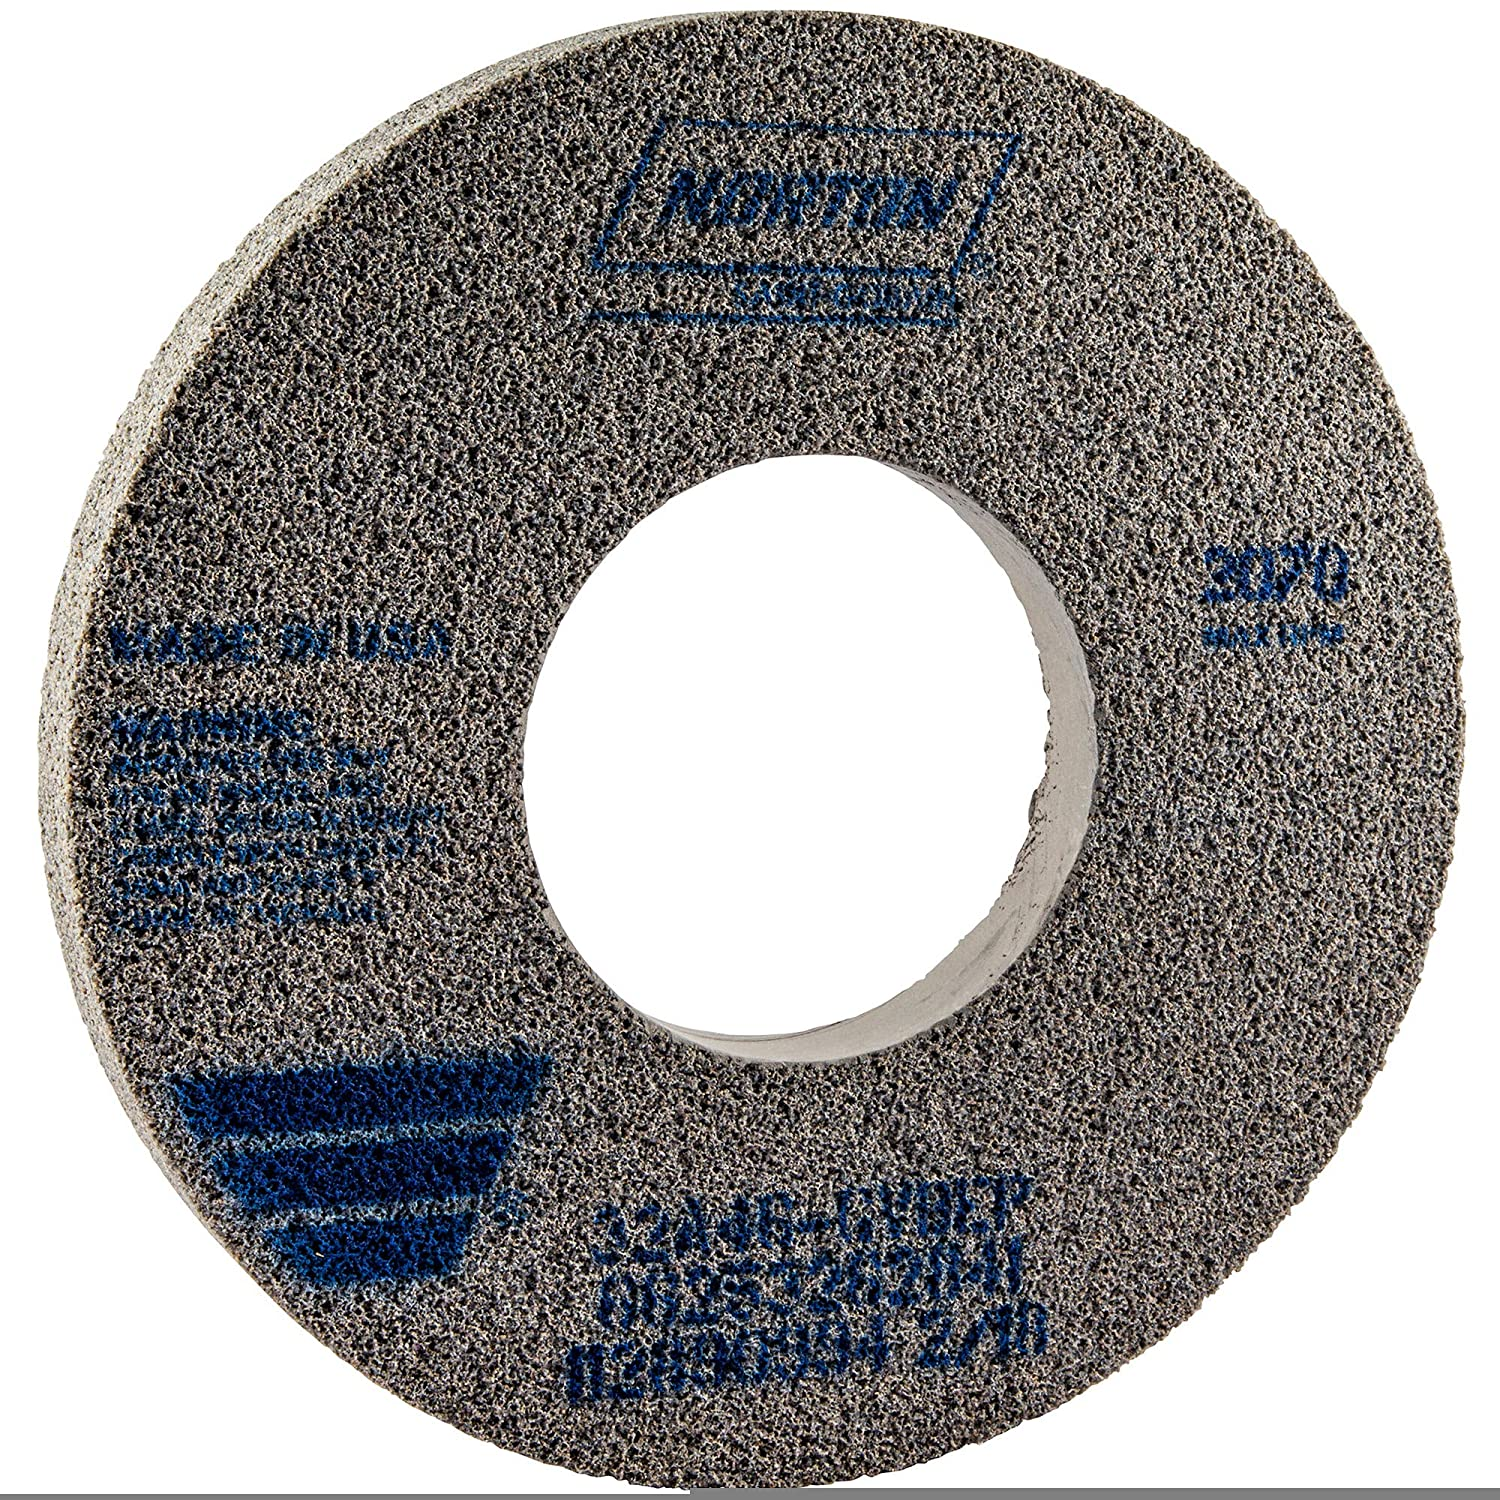 Norton 66253262841 Surface Max 45% OFF Grinding Max 72% OFF Wheels Size 12 5 x 1